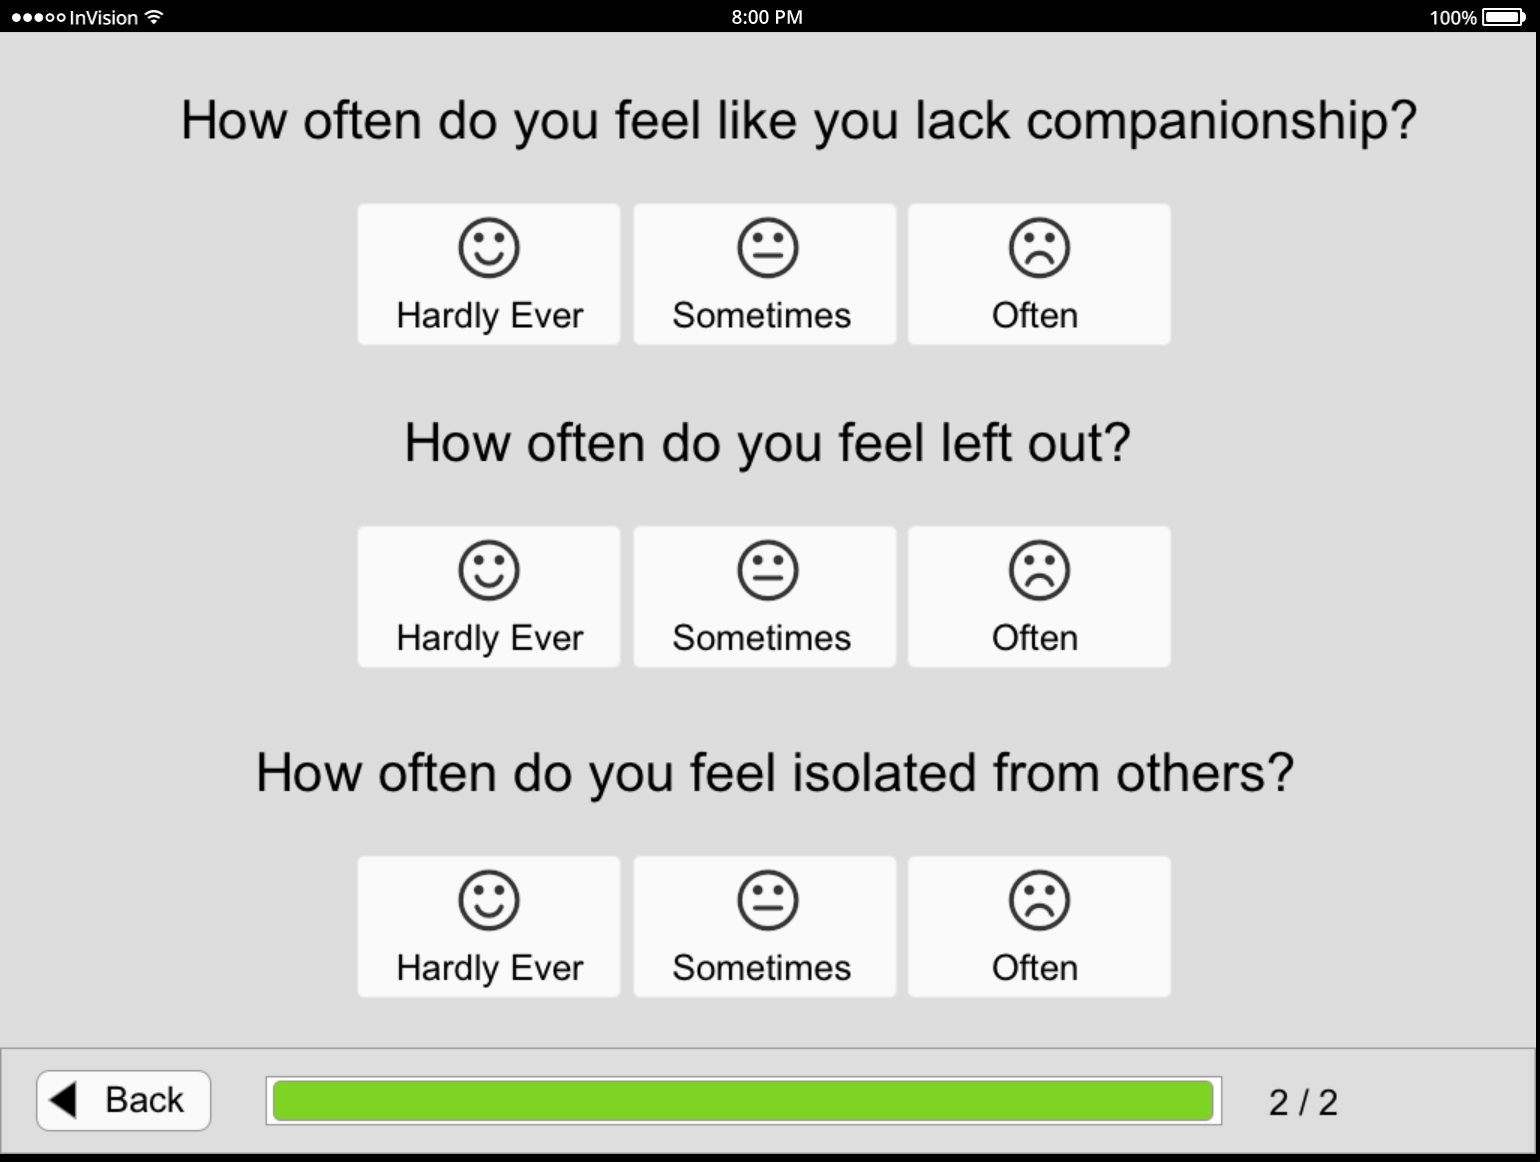 Loneliness_Screener_Preview_Mode_-_InVision2.png